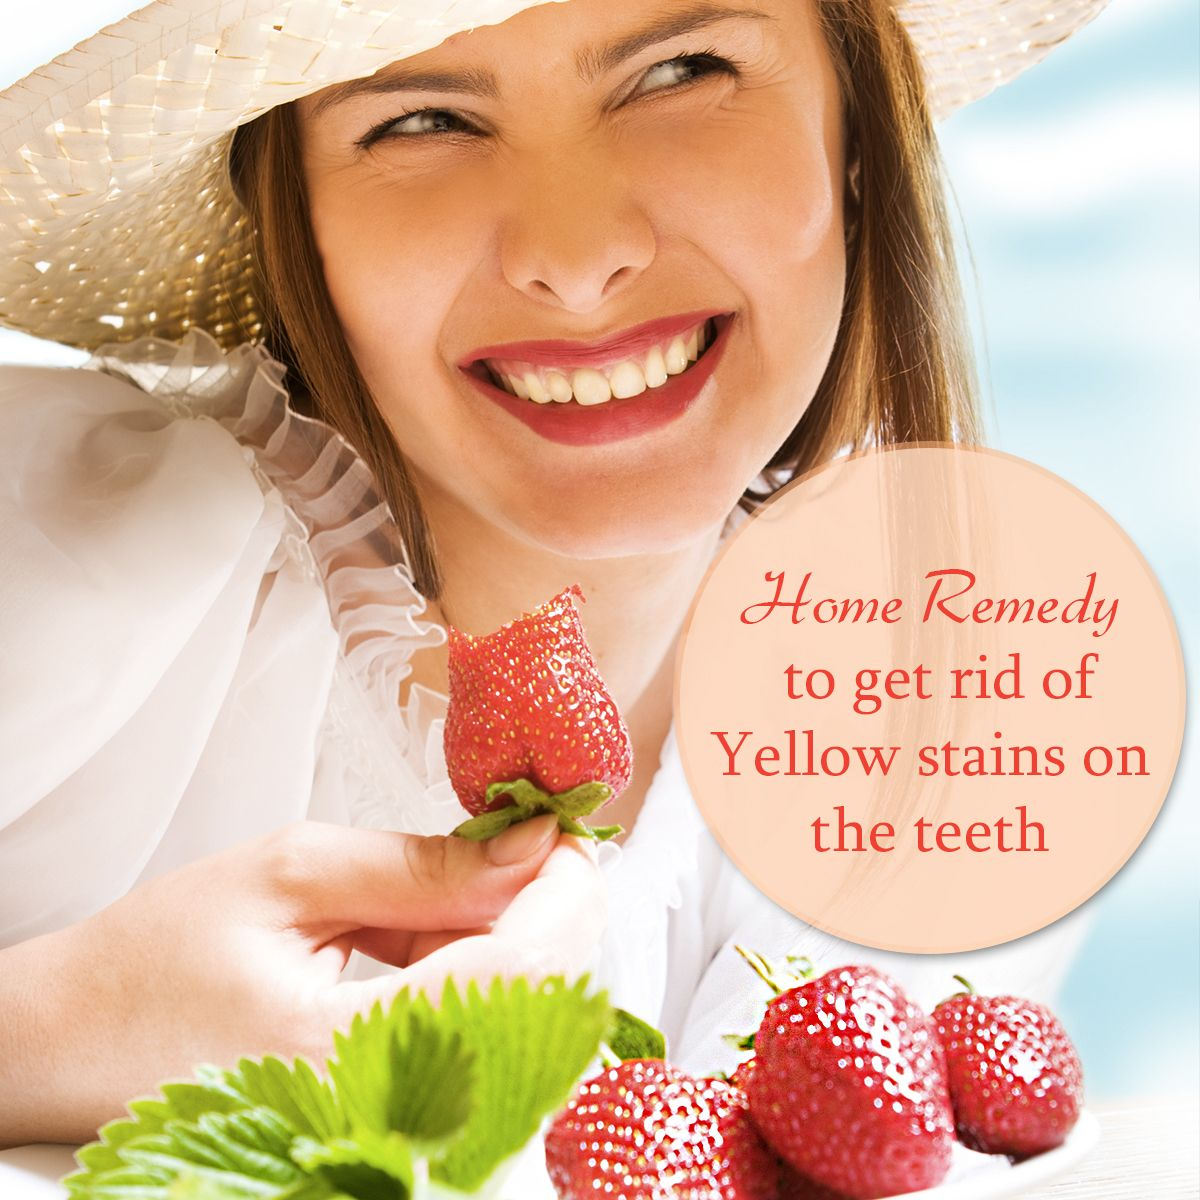 Home Remedies to get rid of Yellow stains on the teeth